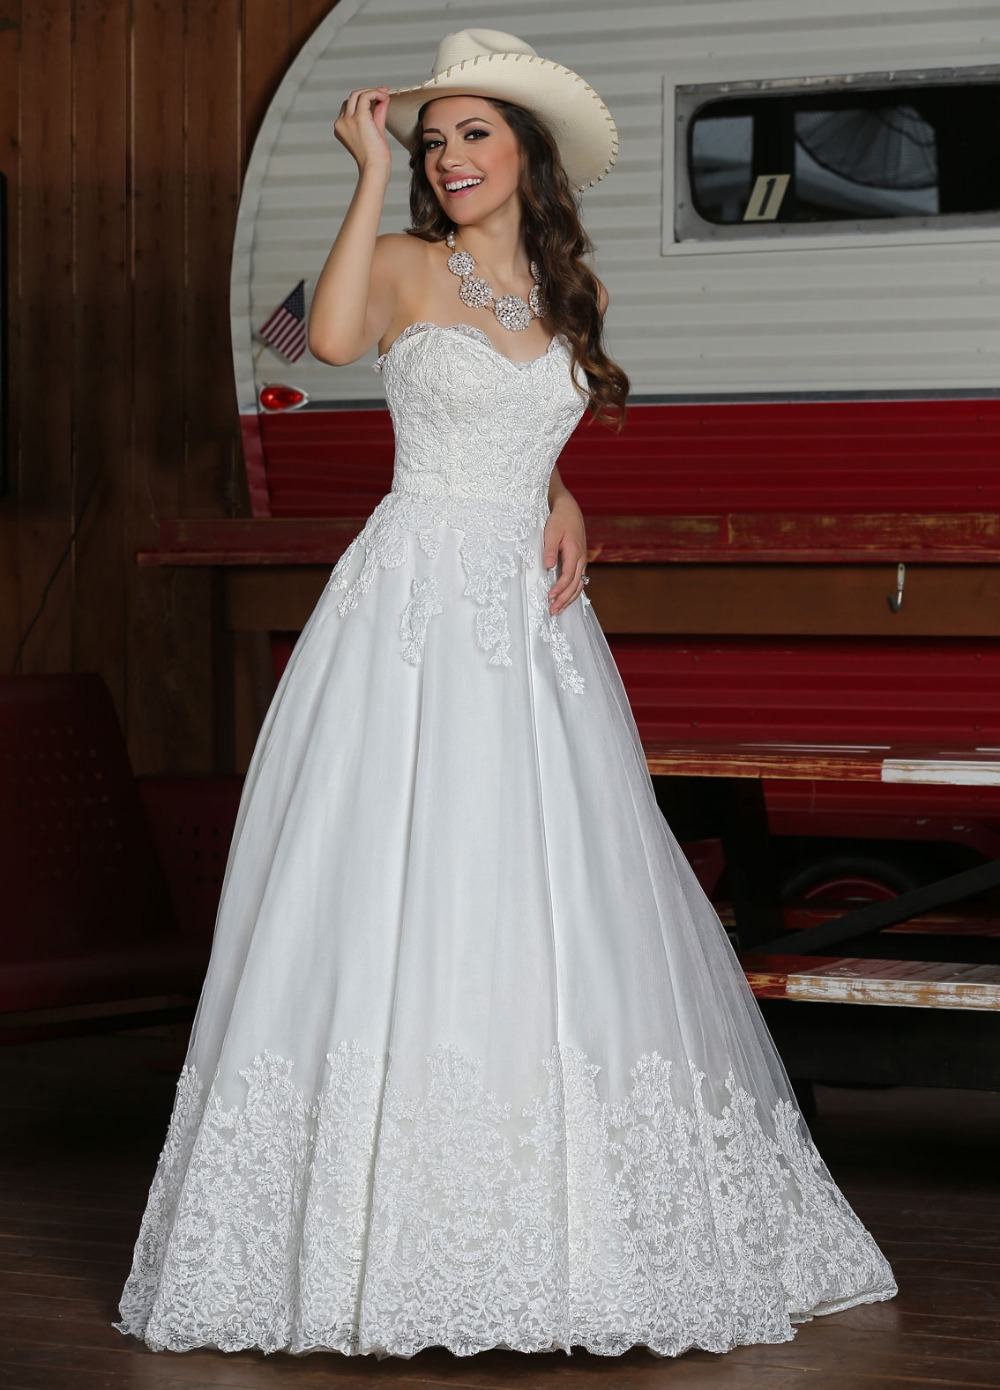 Compare Prices on Bridal Shop Sale- Online Shopping/Buy Low Price ...